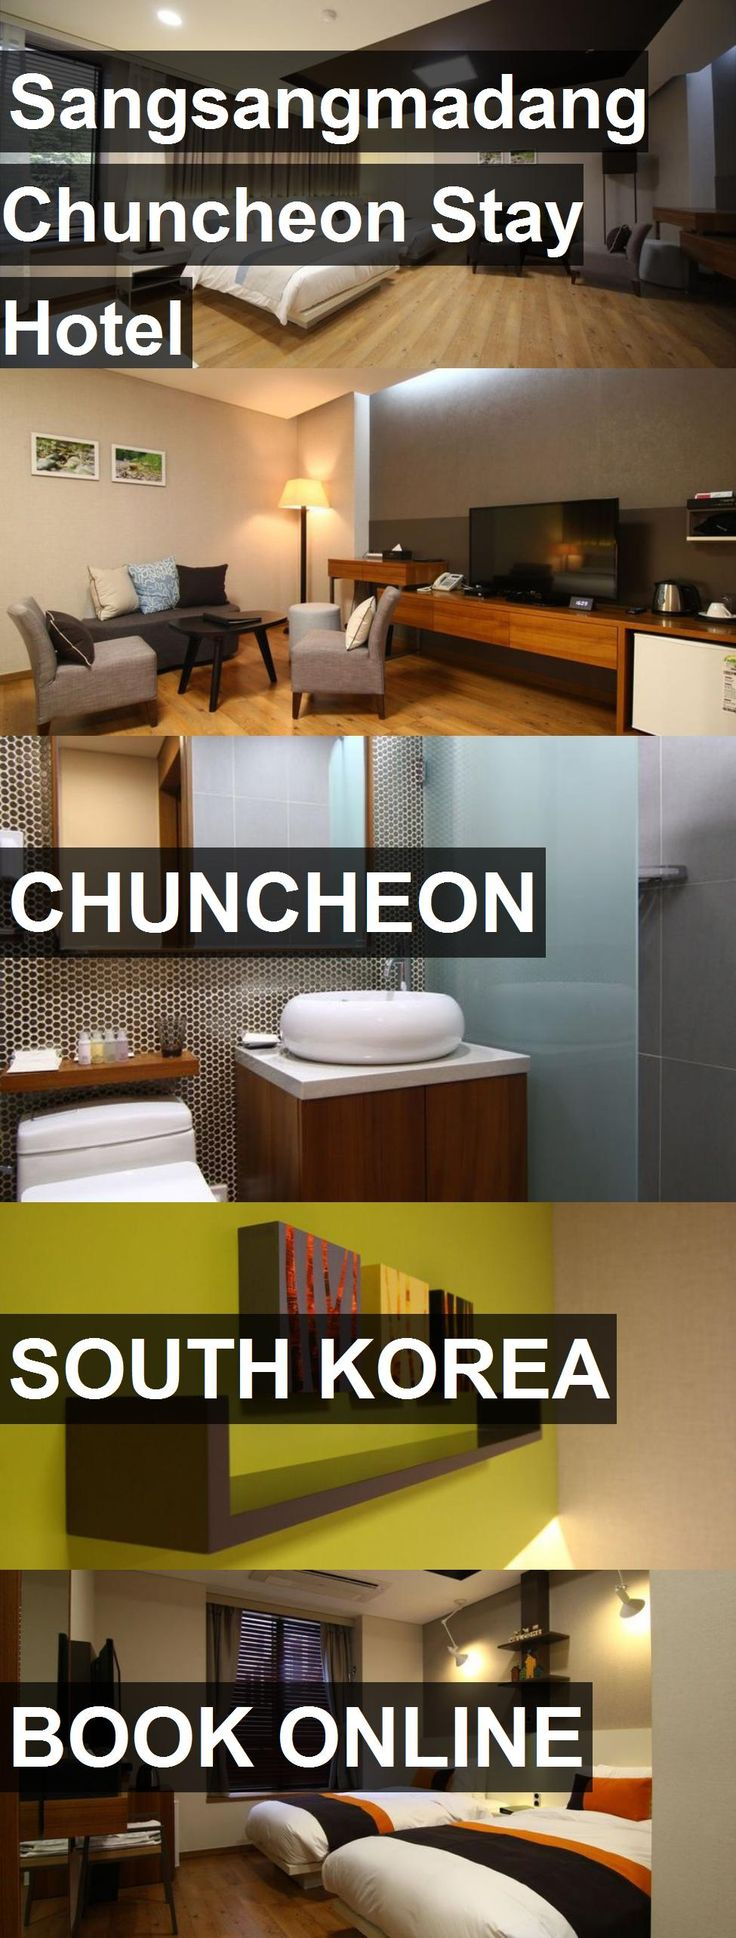 Sangsangmadang Chuncheon Stay Hotel in Chuncheon, South Korea. For more information, photos, reviews and best prices please follow the link. #SouthKorea #Chuncheon #travel #vacation #hotel